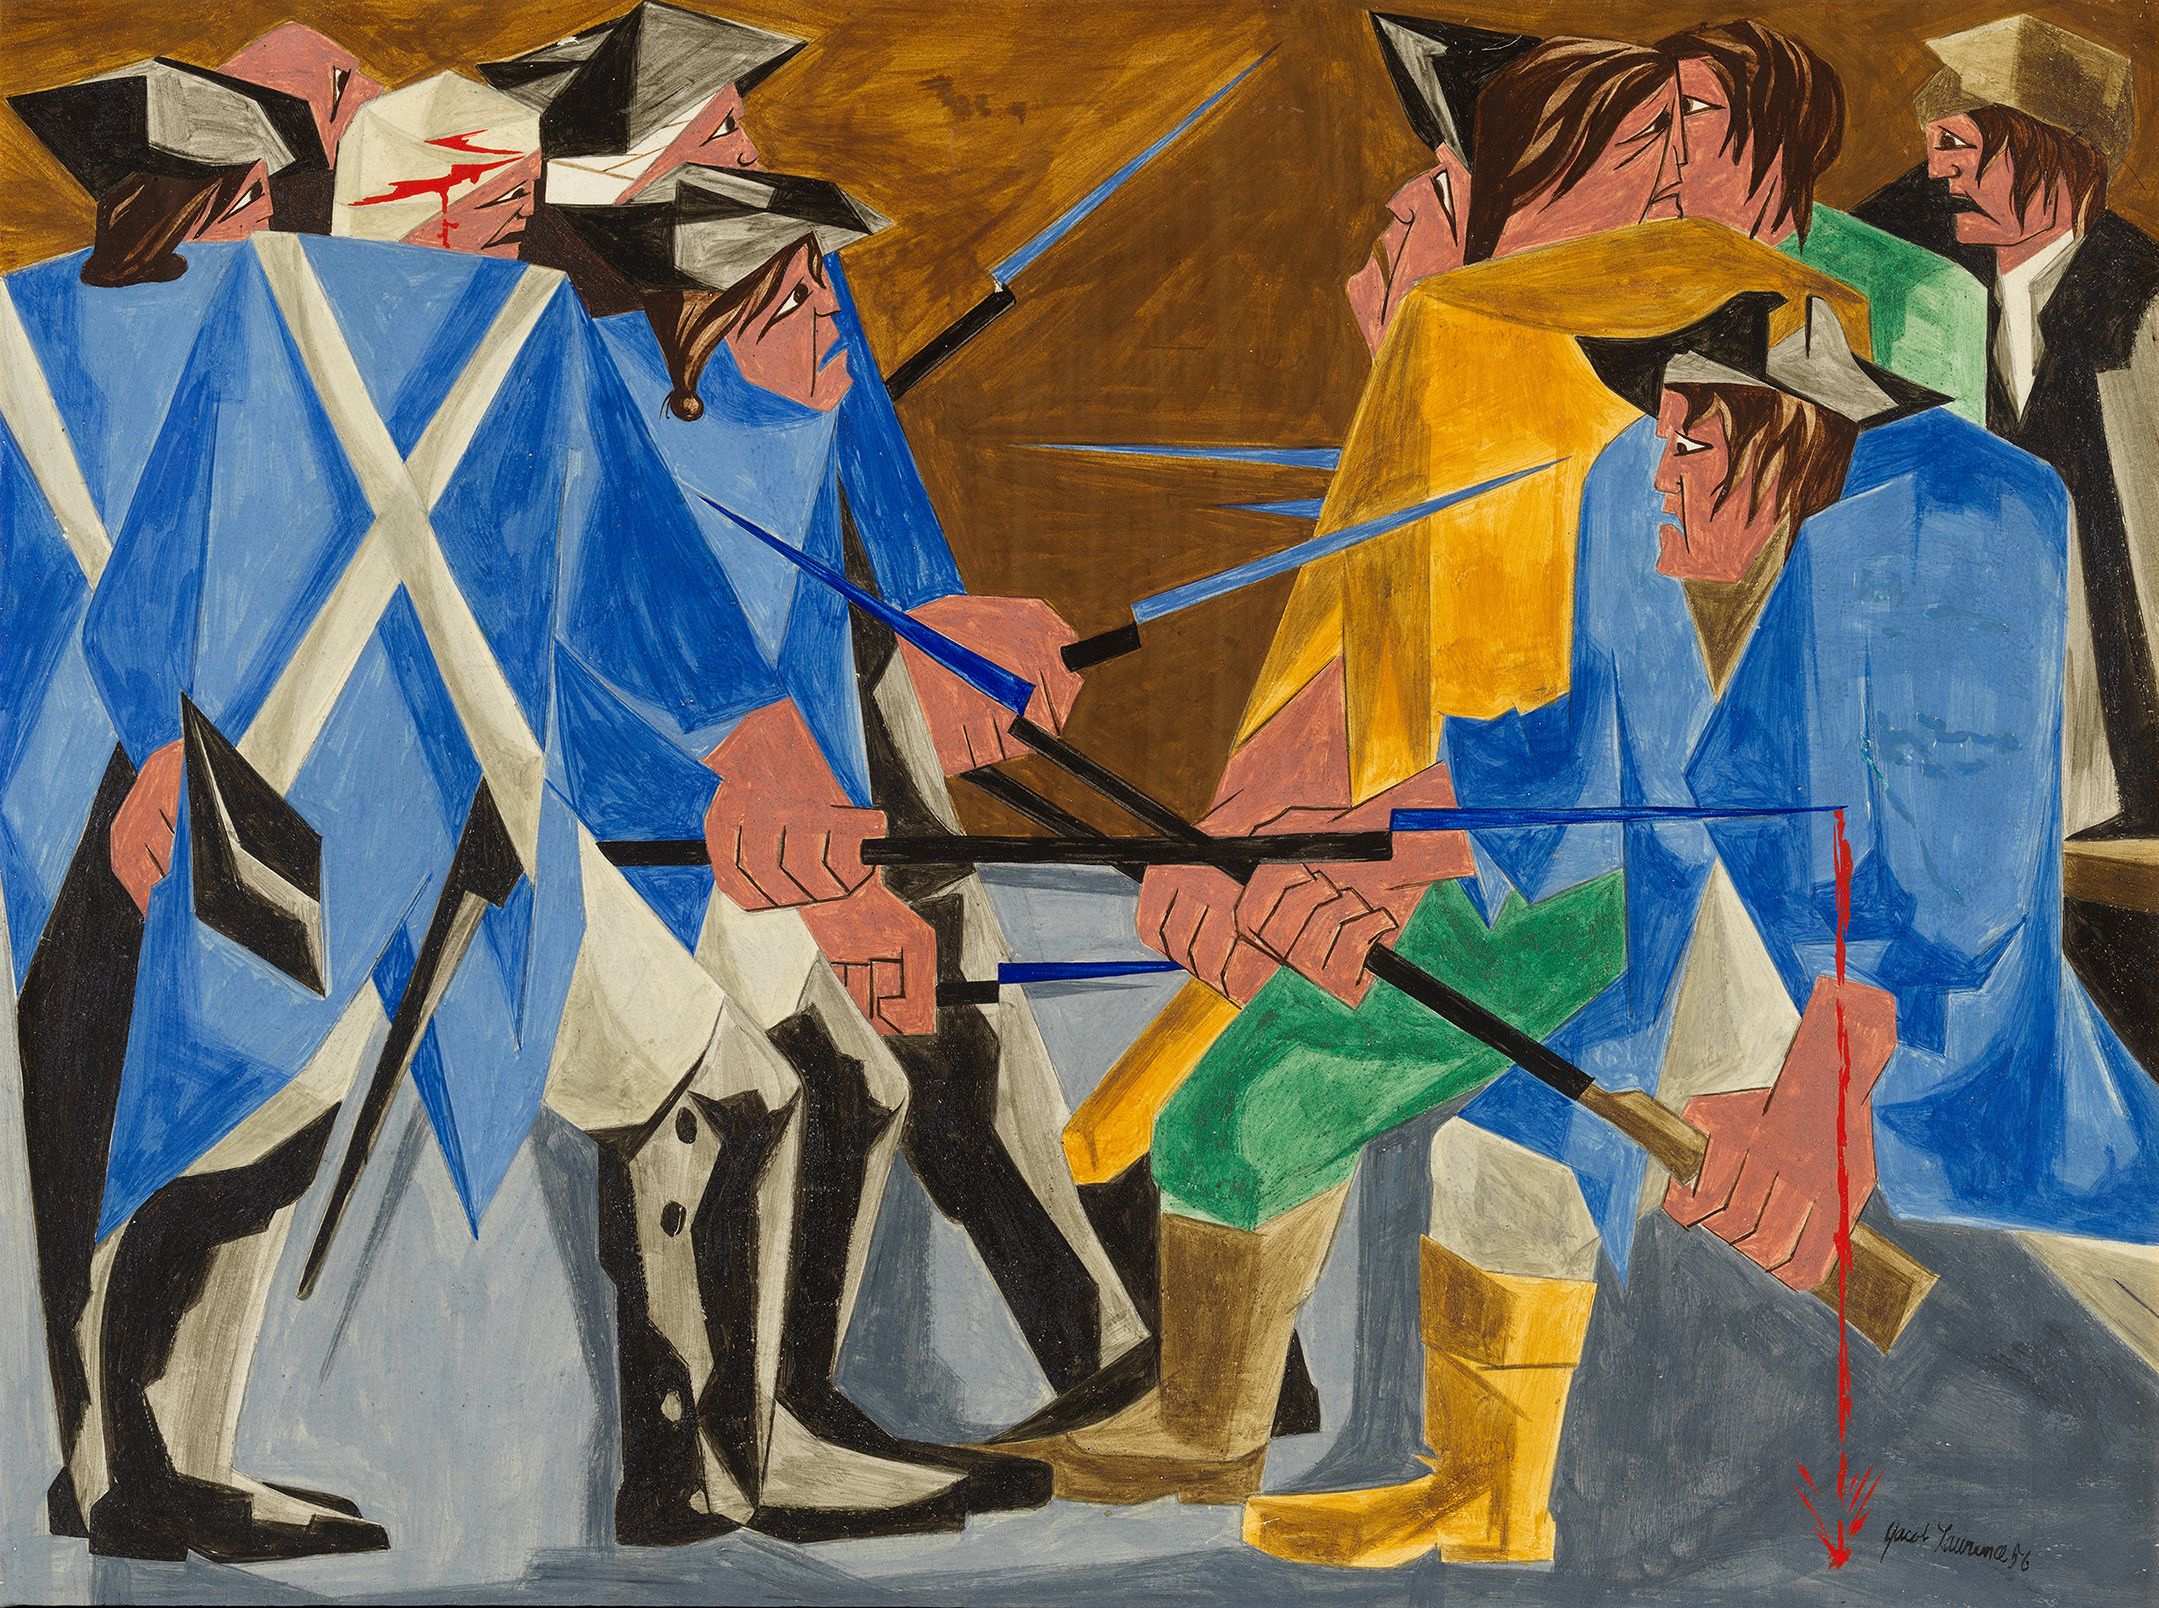 A Missing Painting By Renowned Black Artist Jacob Lawrence Has Resurfaced After 60 Years Cnn Style